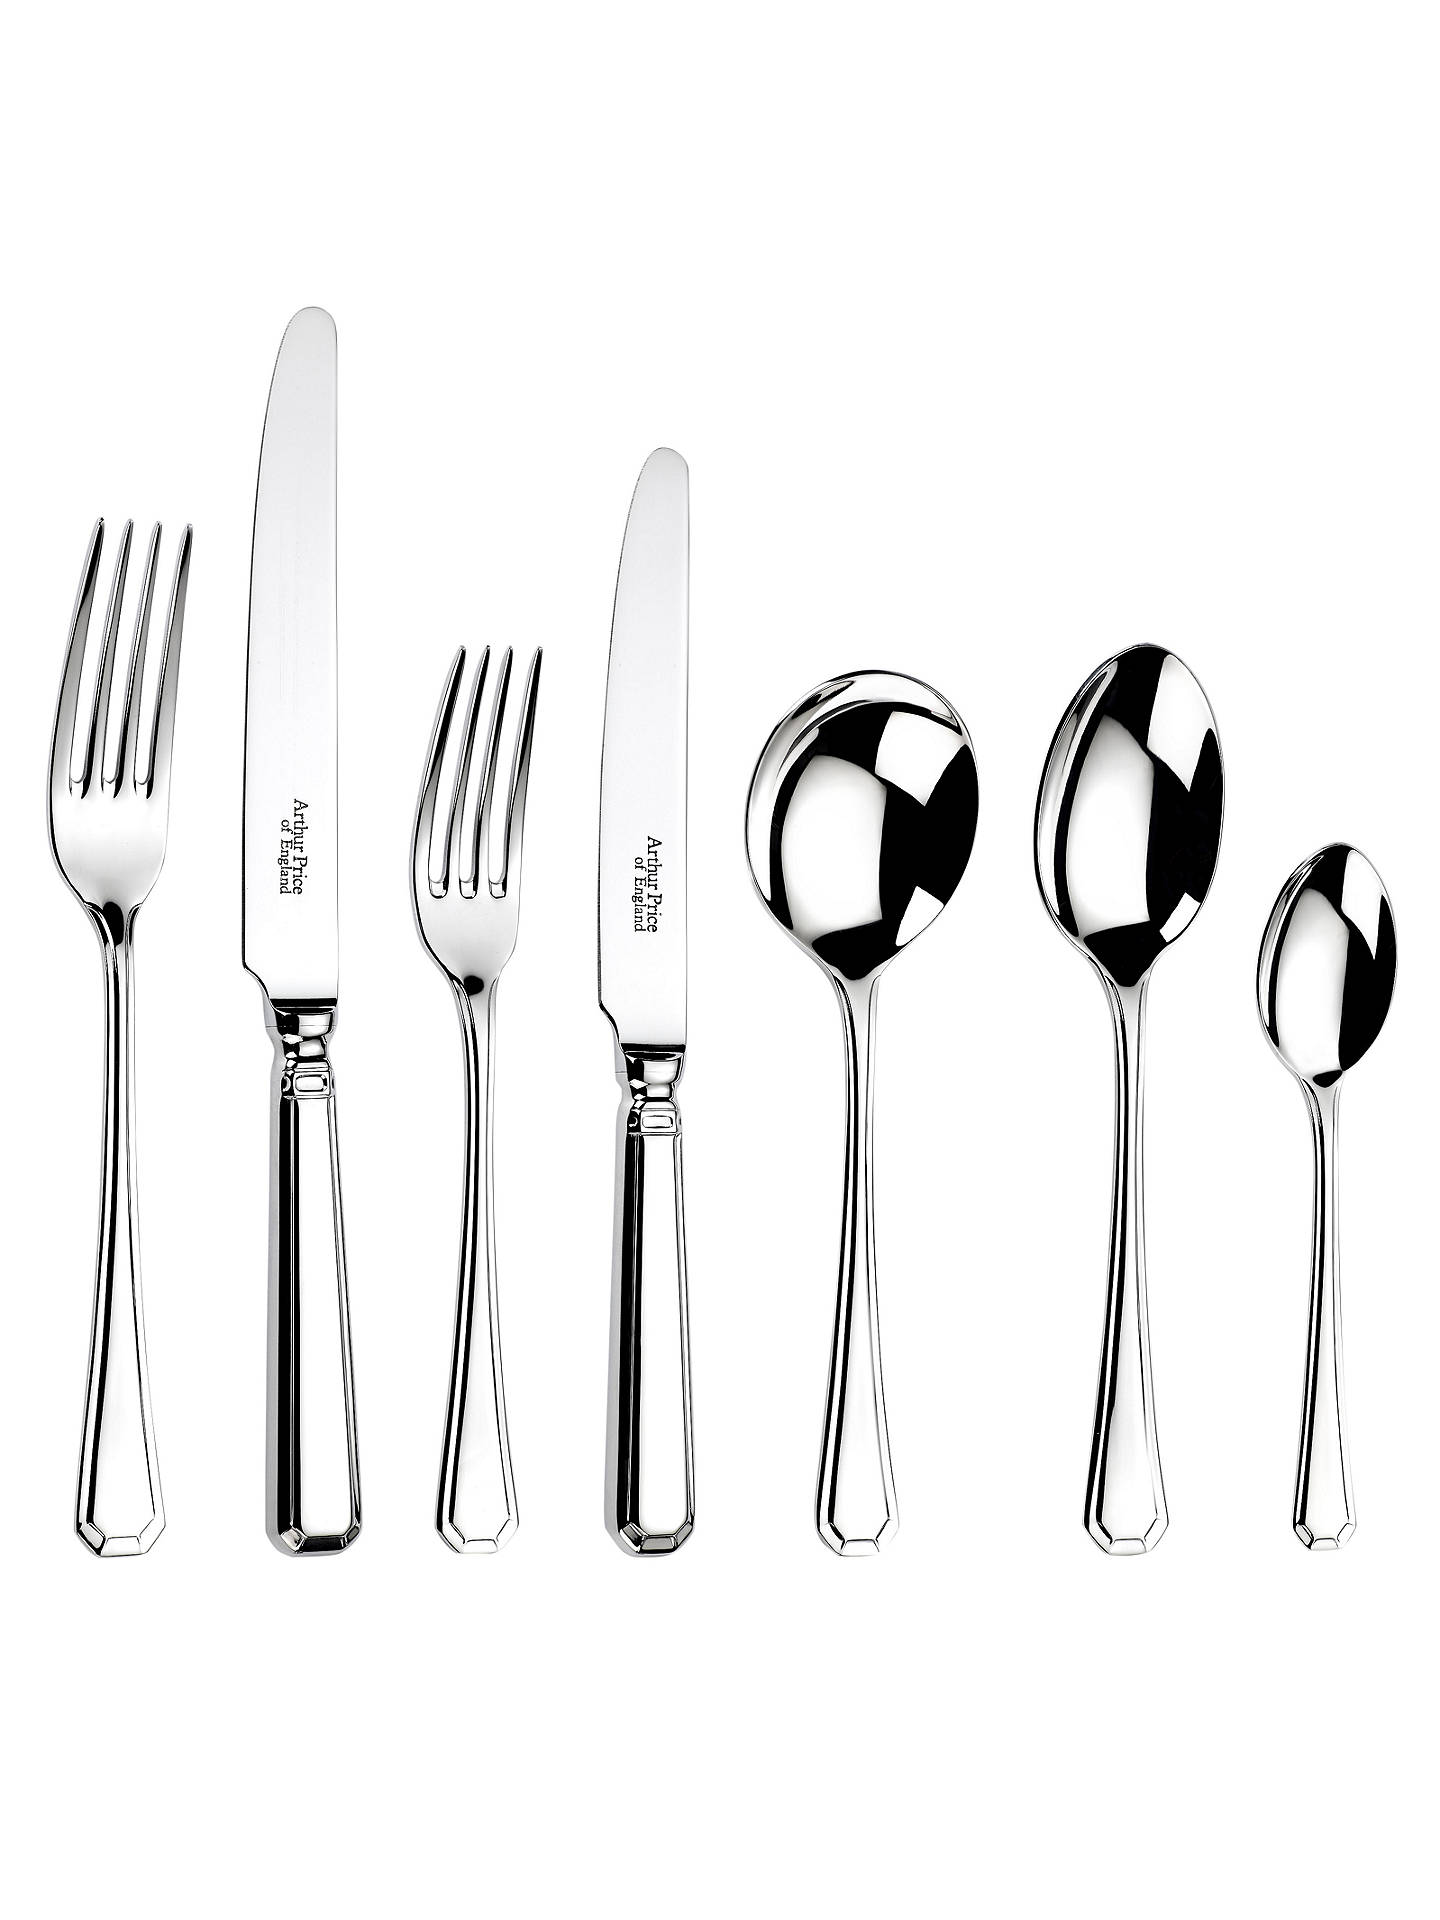 Buy Arthur Price Grecian Cutlery Set, 1 Place Setting Online at johnlewis.com